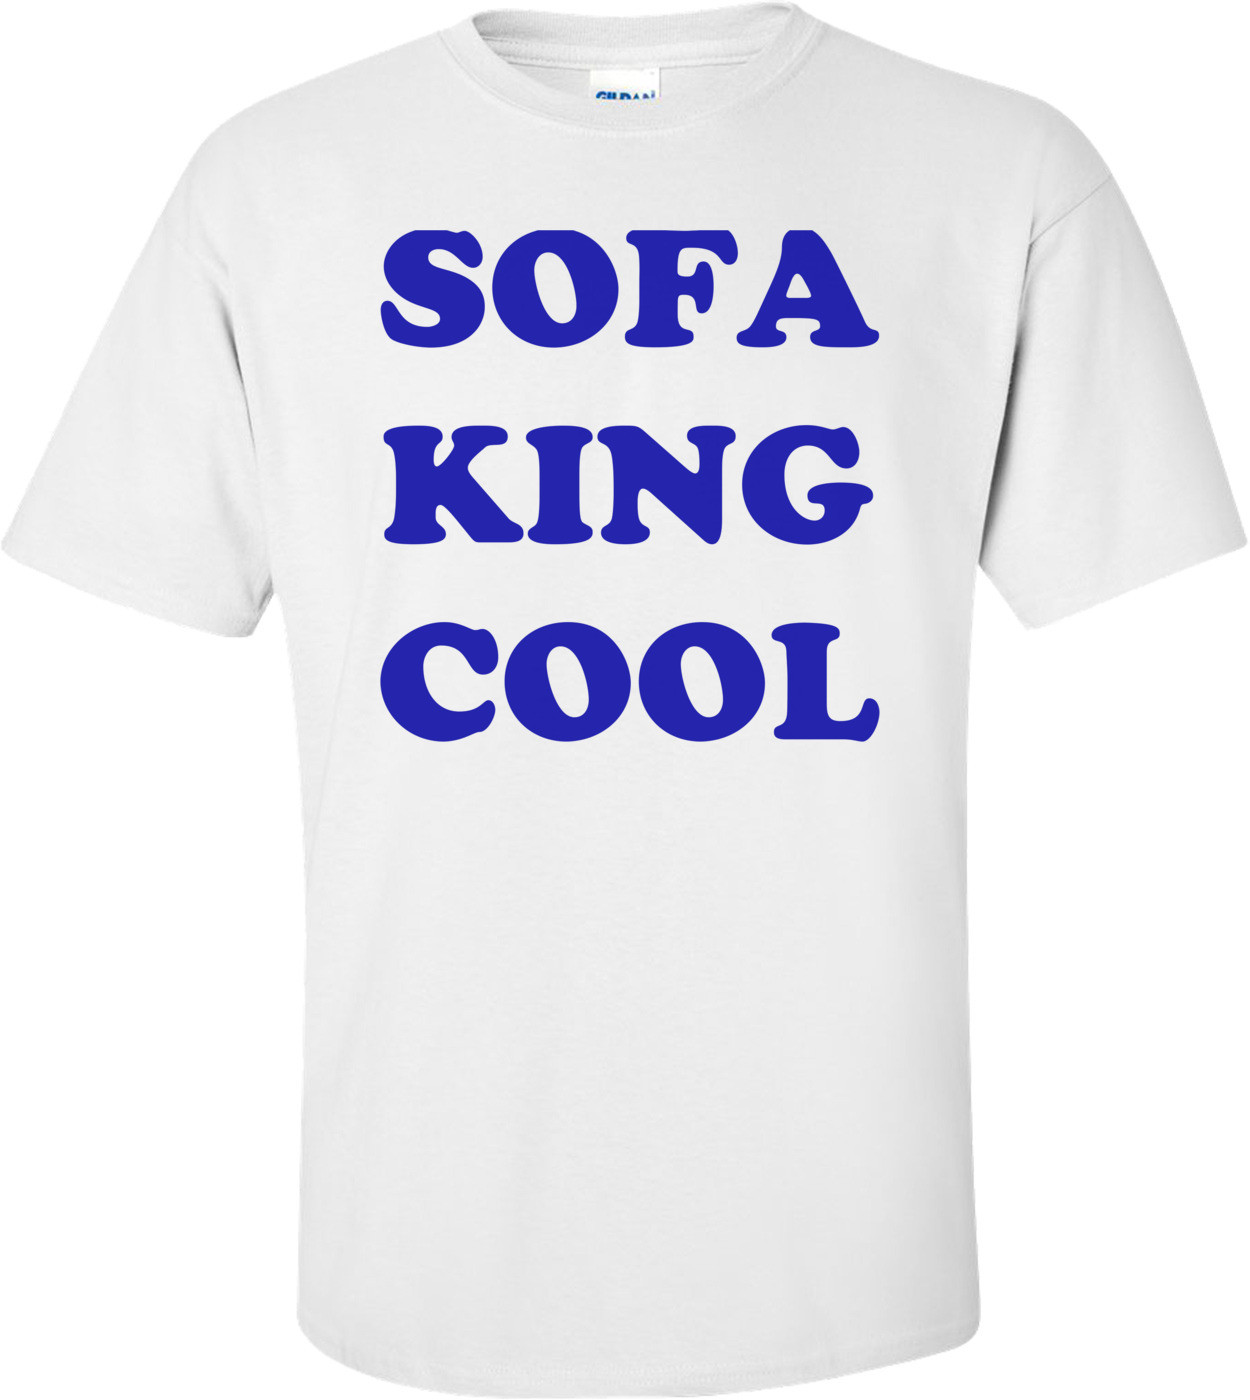 SOFA KING COOL Shirt